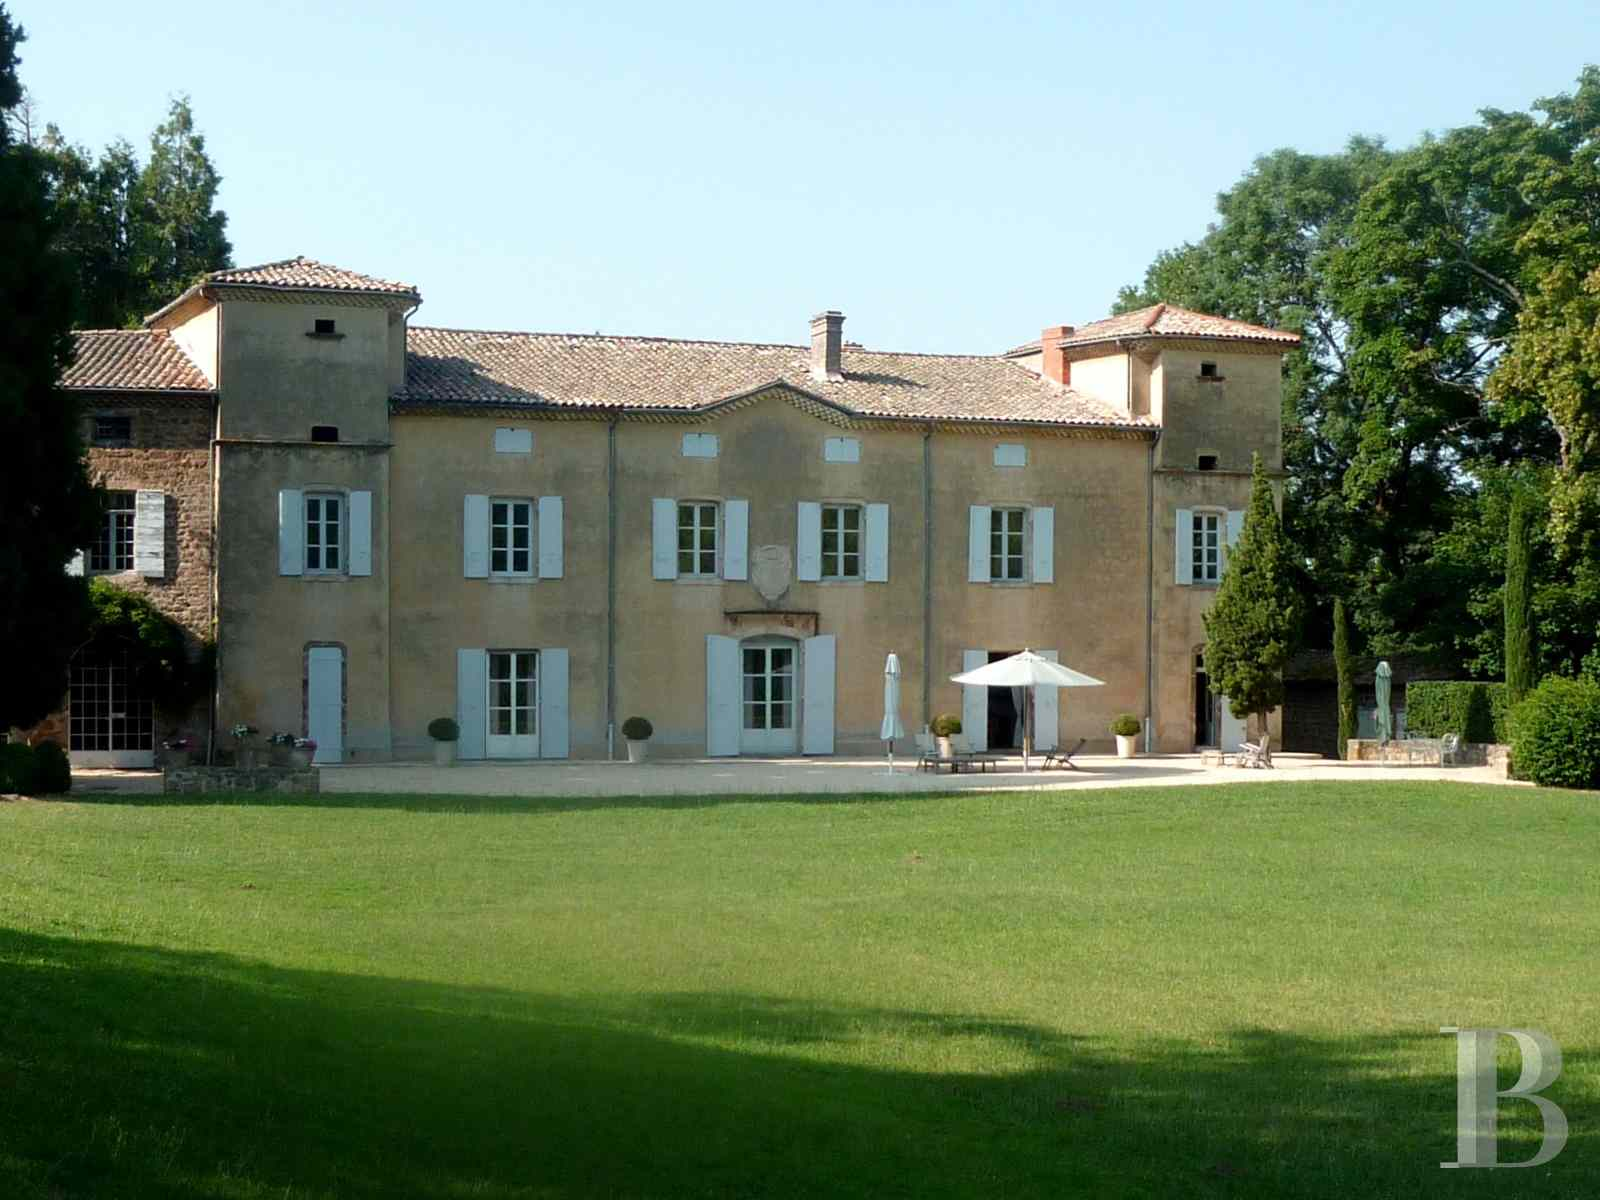 property for sale France rhones alps ardeche 18th - 6 zoom